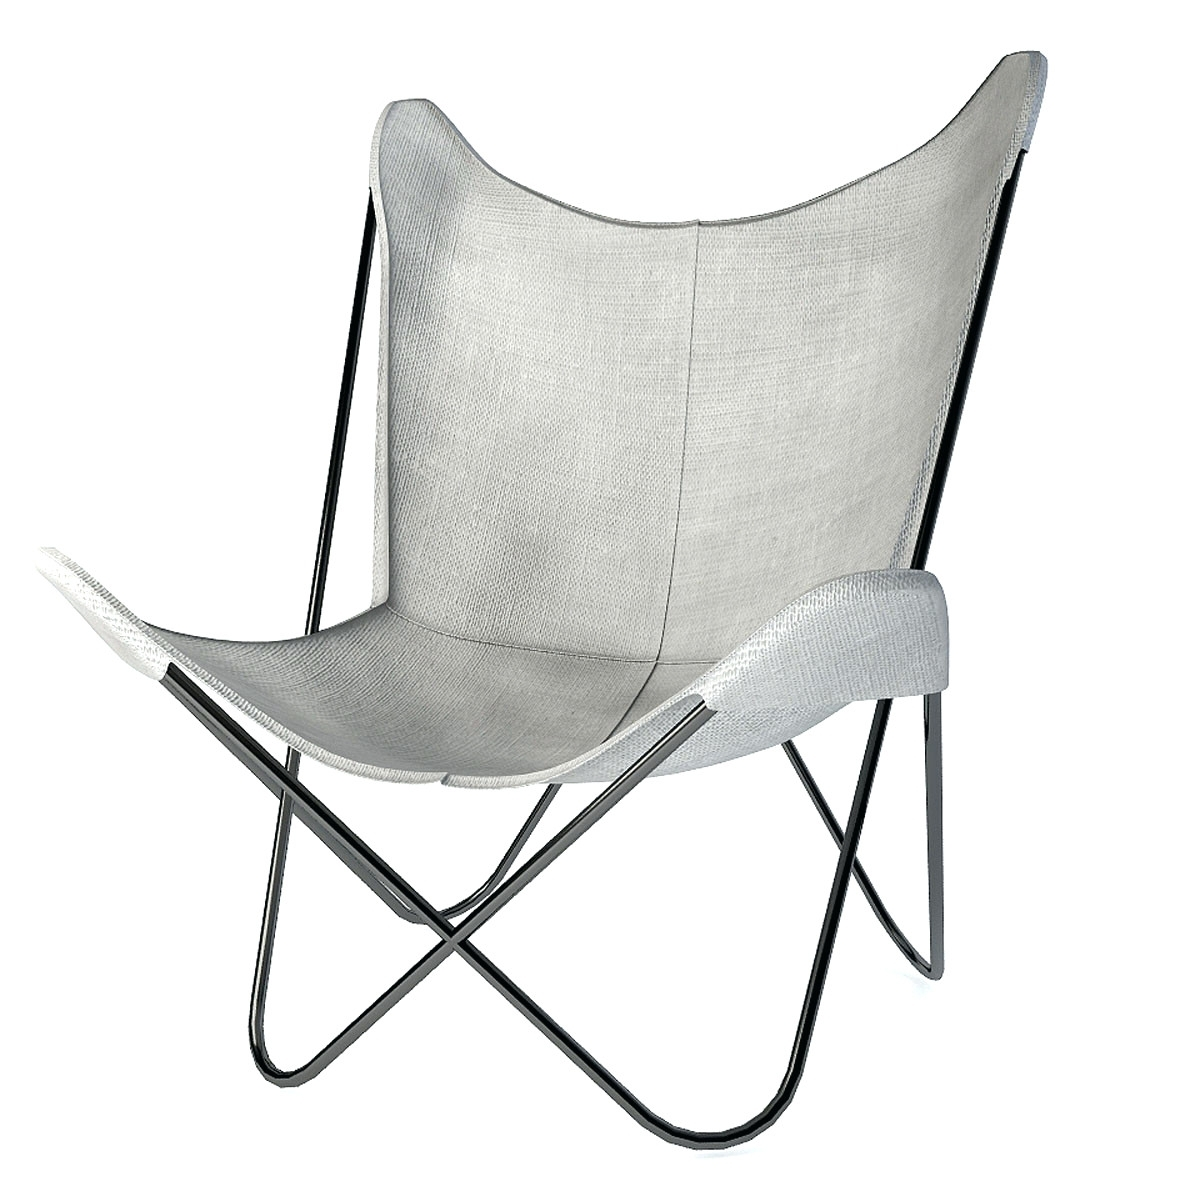 Chaise Lounge Chairs At Kohls Within Famous Kohl's Student Lounge Butterfly Chair • Lounge Chairs Ideas (View 6 of 15)